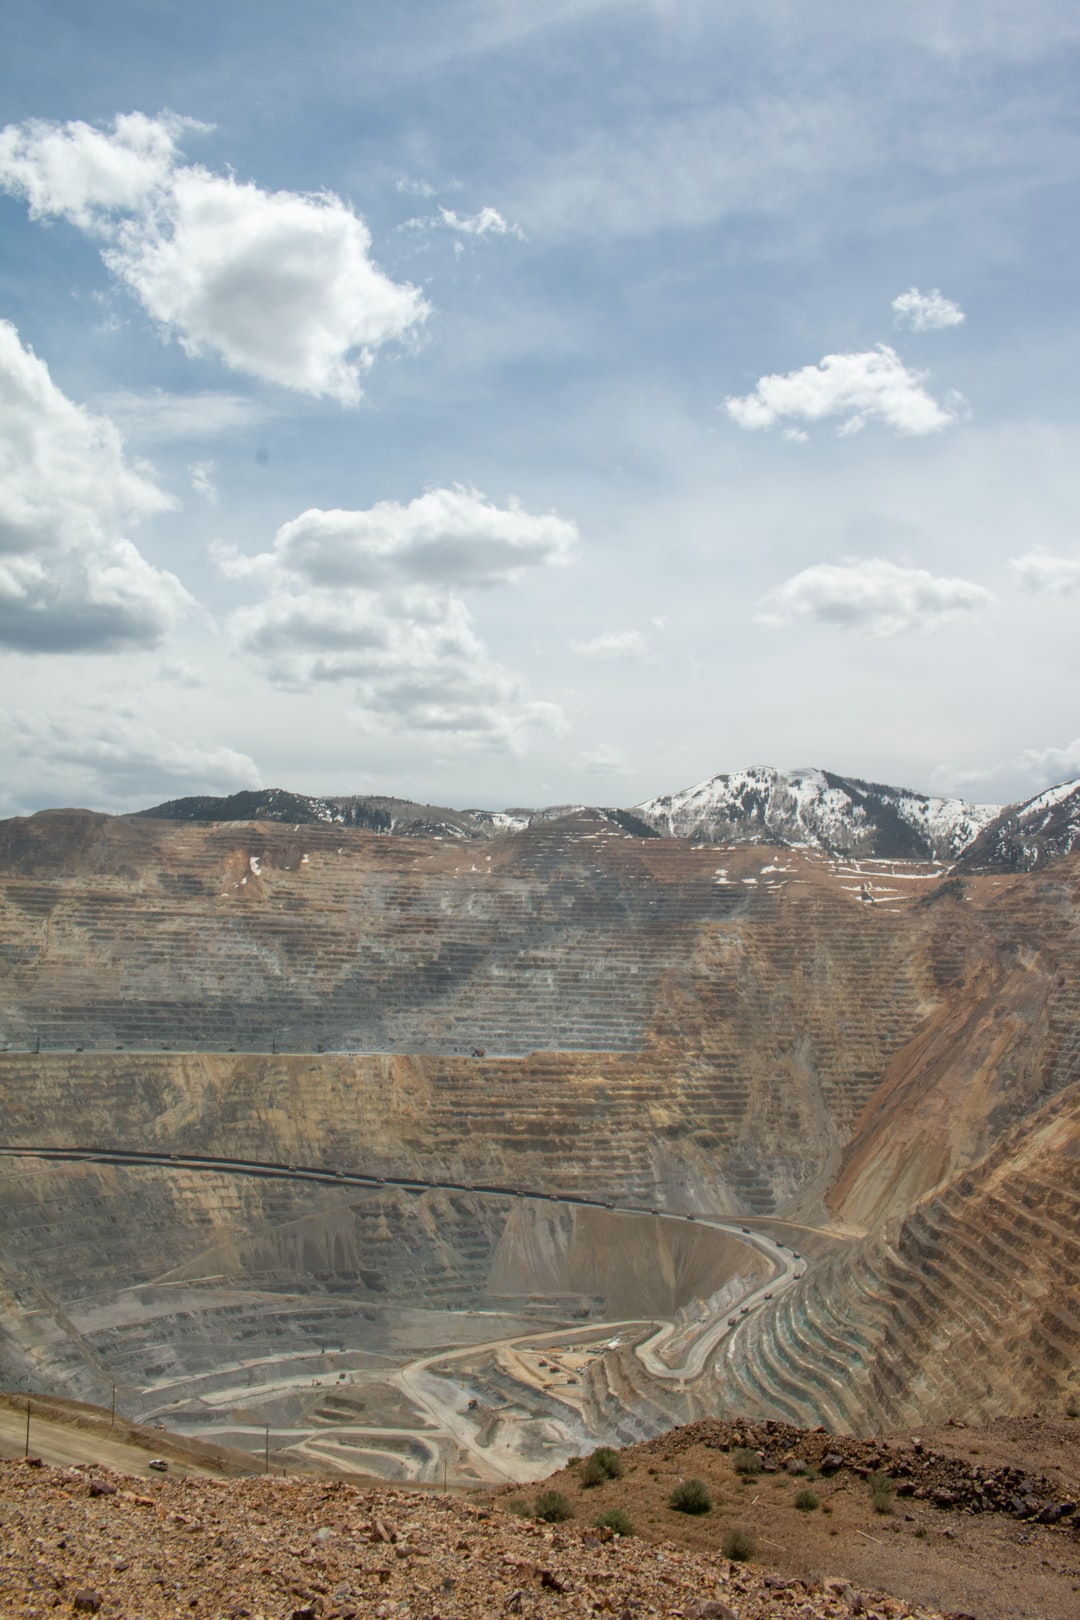 View of the Bingham Canyon Mine. Each of the vehicles driving down is two stories tall.